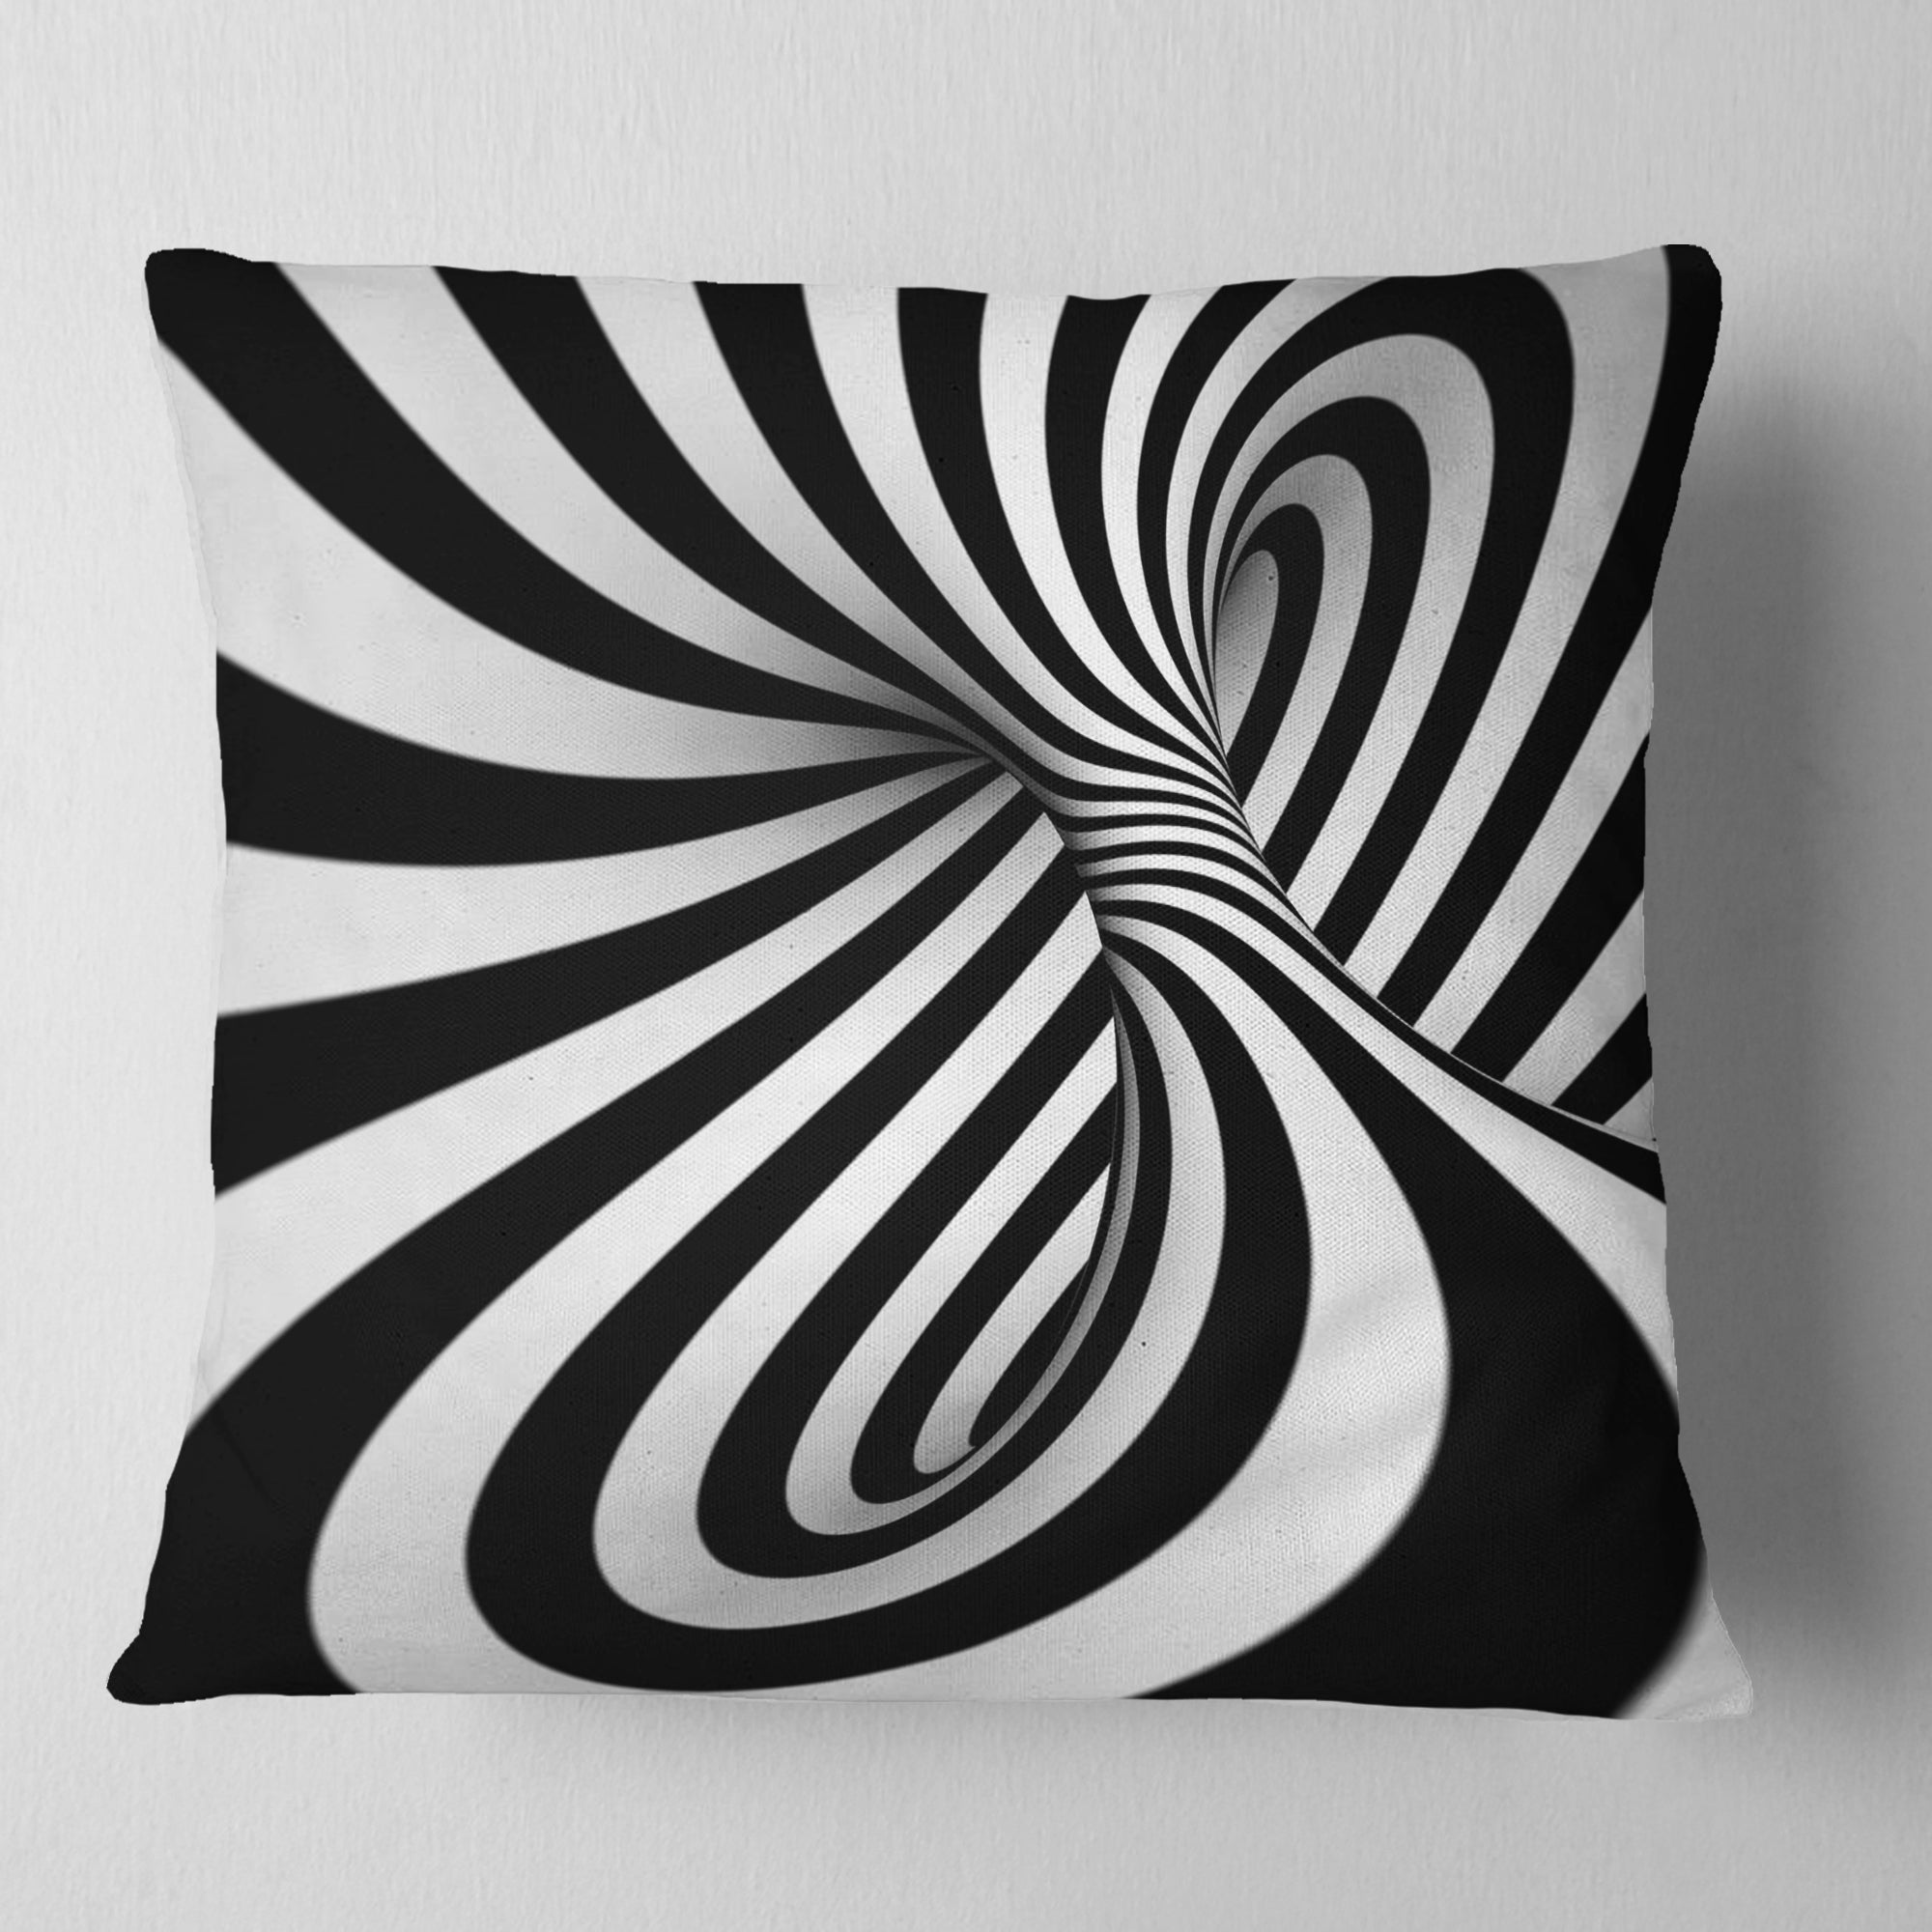 Shop designart spiral black n white contemporary throw pillow free shipping on orders over 45 overstock com 20890623